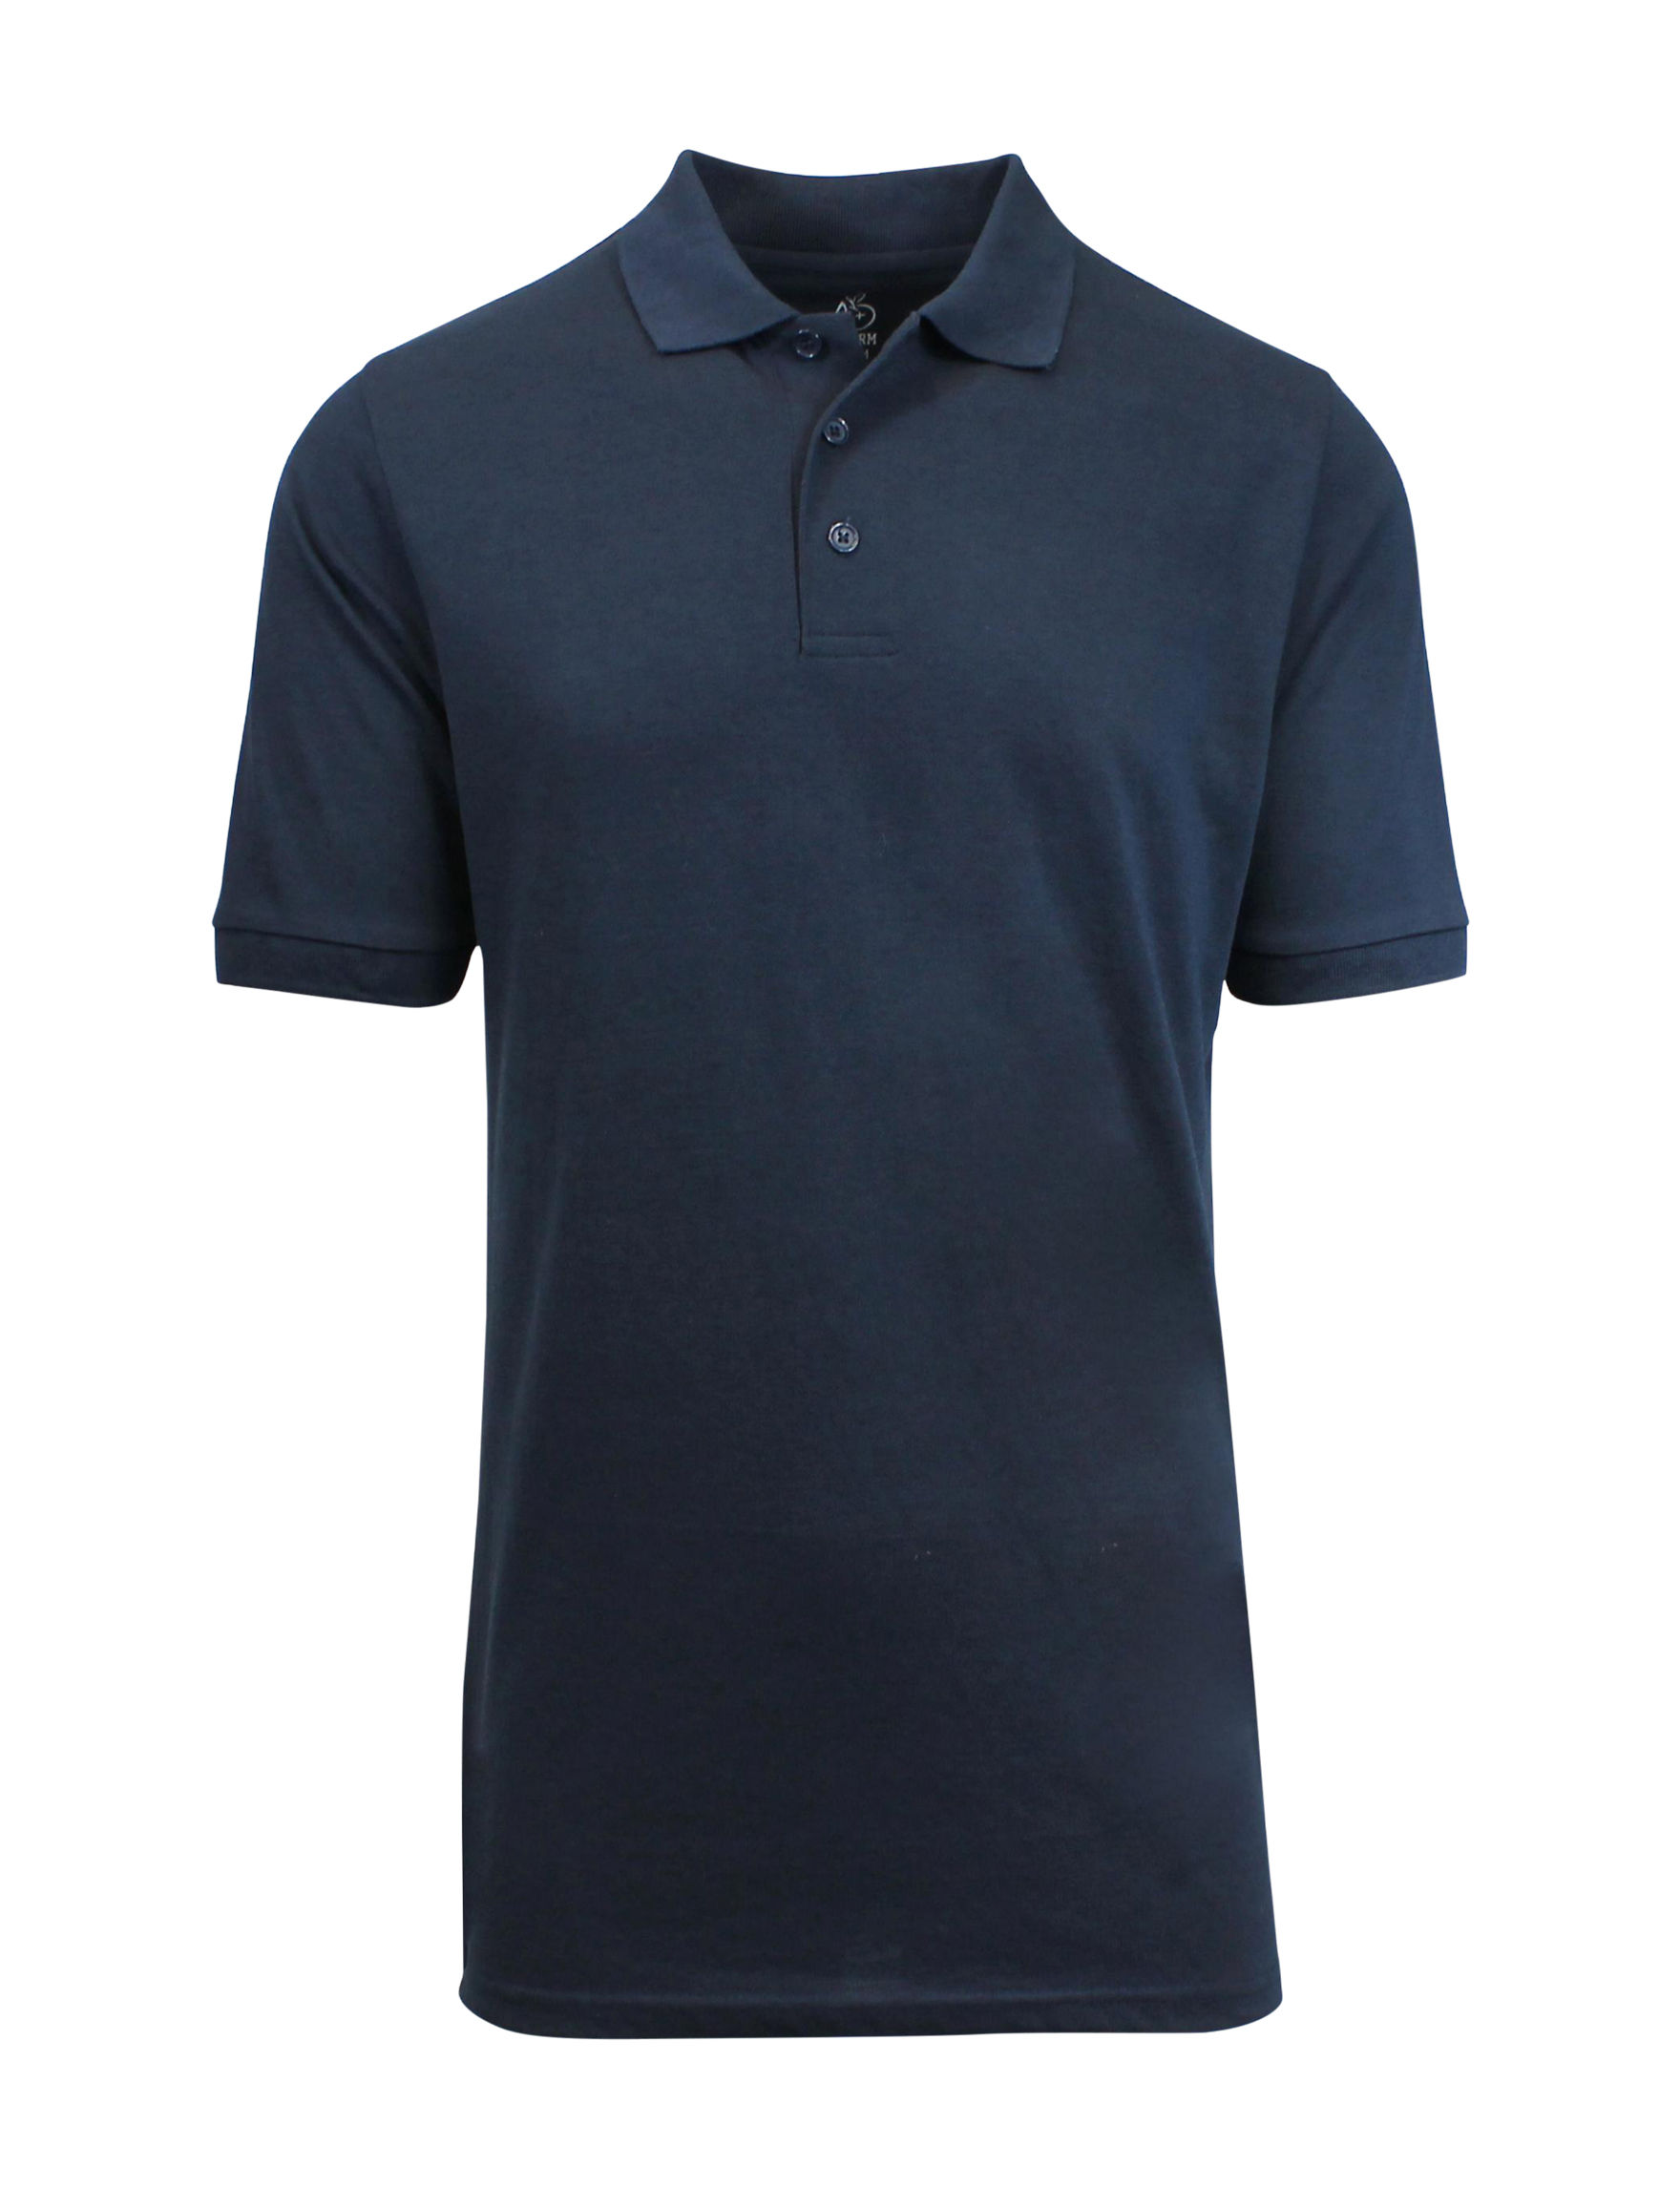 Galaxy by Harvic Navy Polos